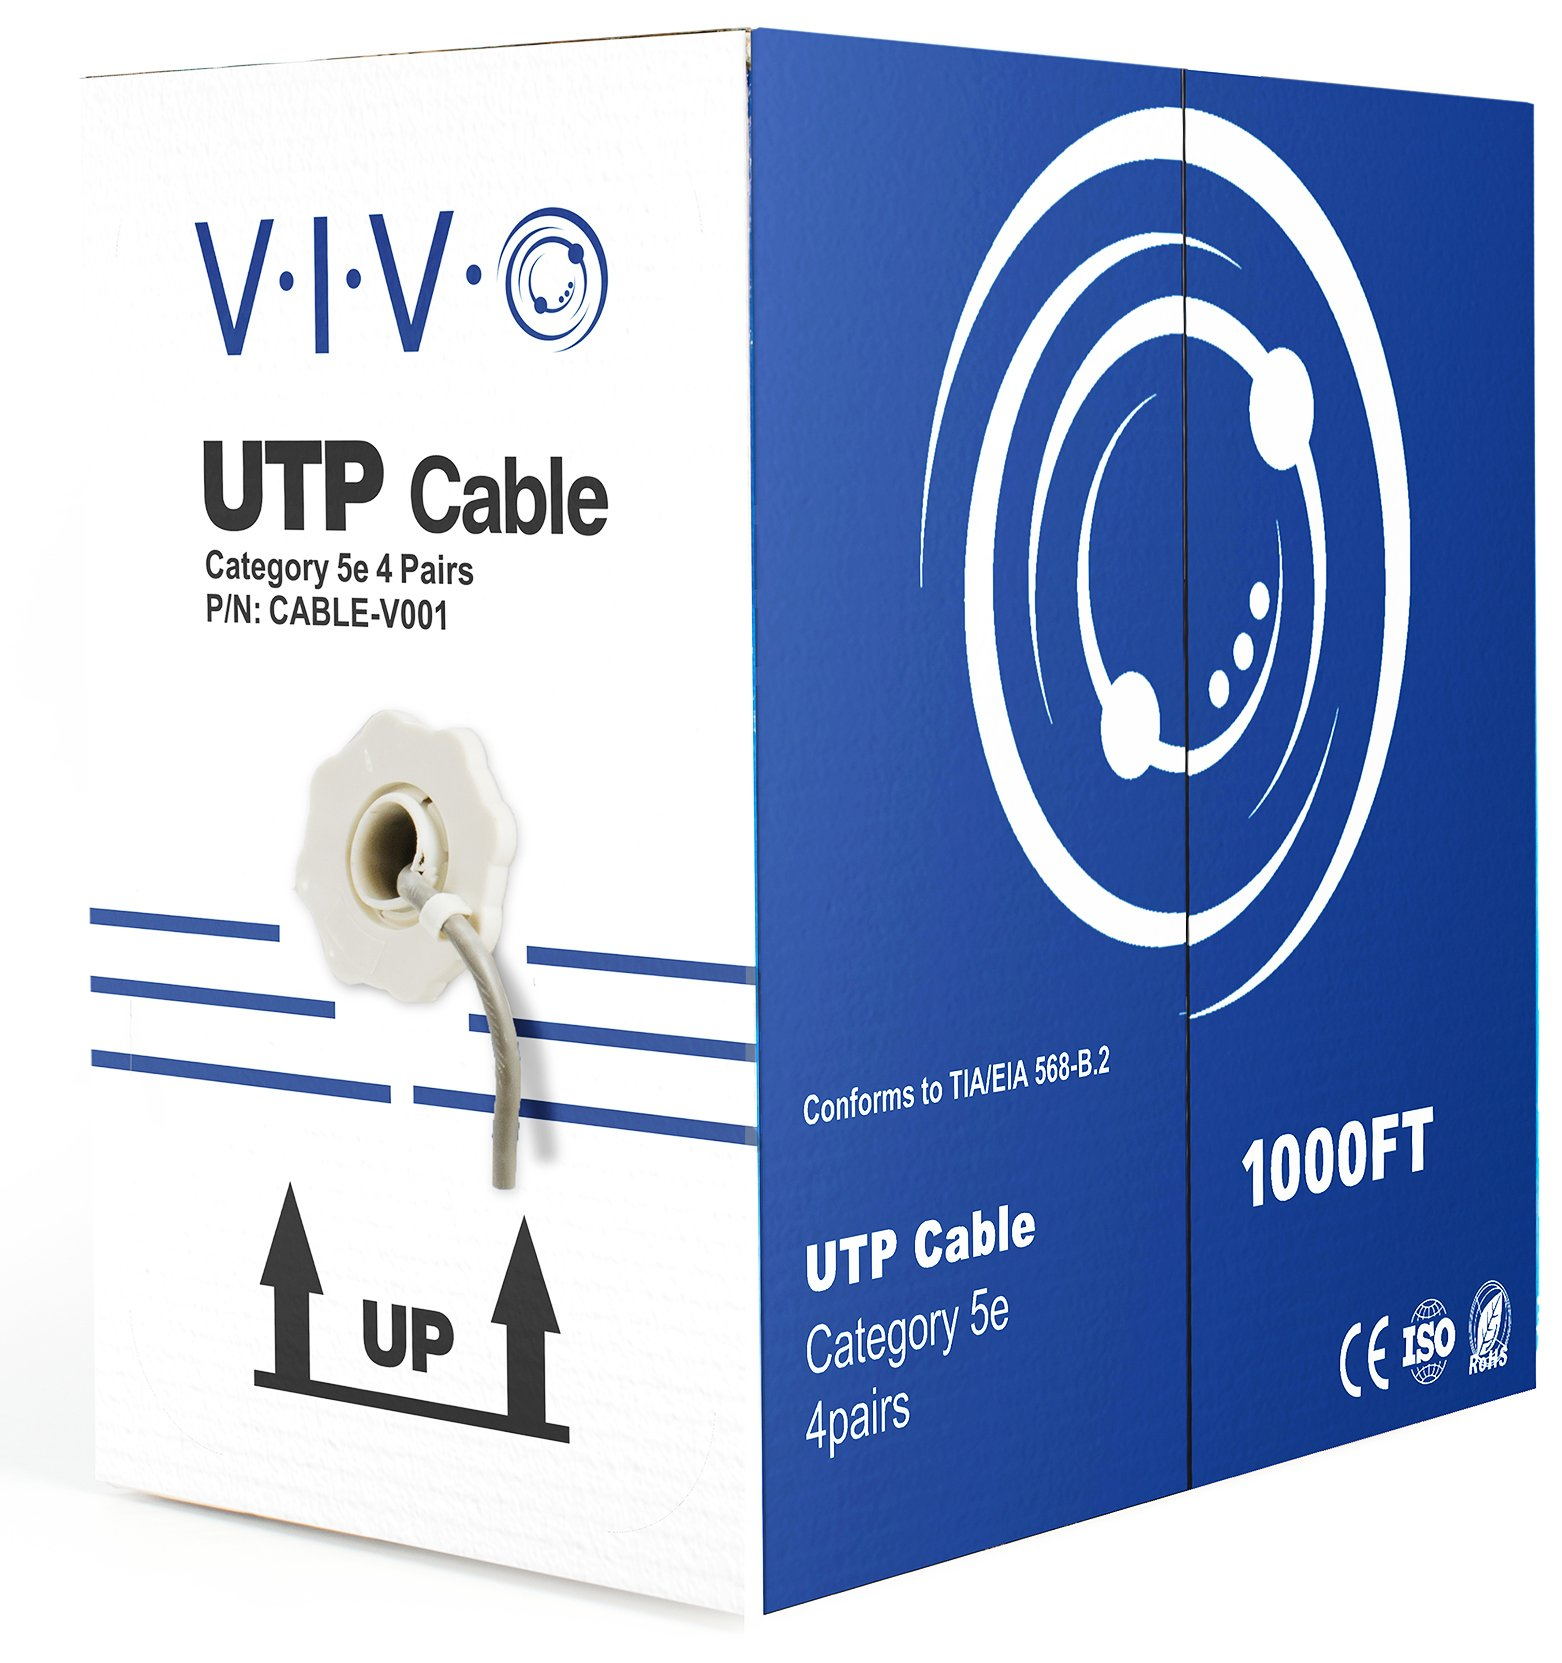 VIVO 1,000 ft bulk Cat5e Ethernet Cable/Wire UTP Pull Box 1,000ft Cat-5e Style Grey (CABLE-V001) by VIVO